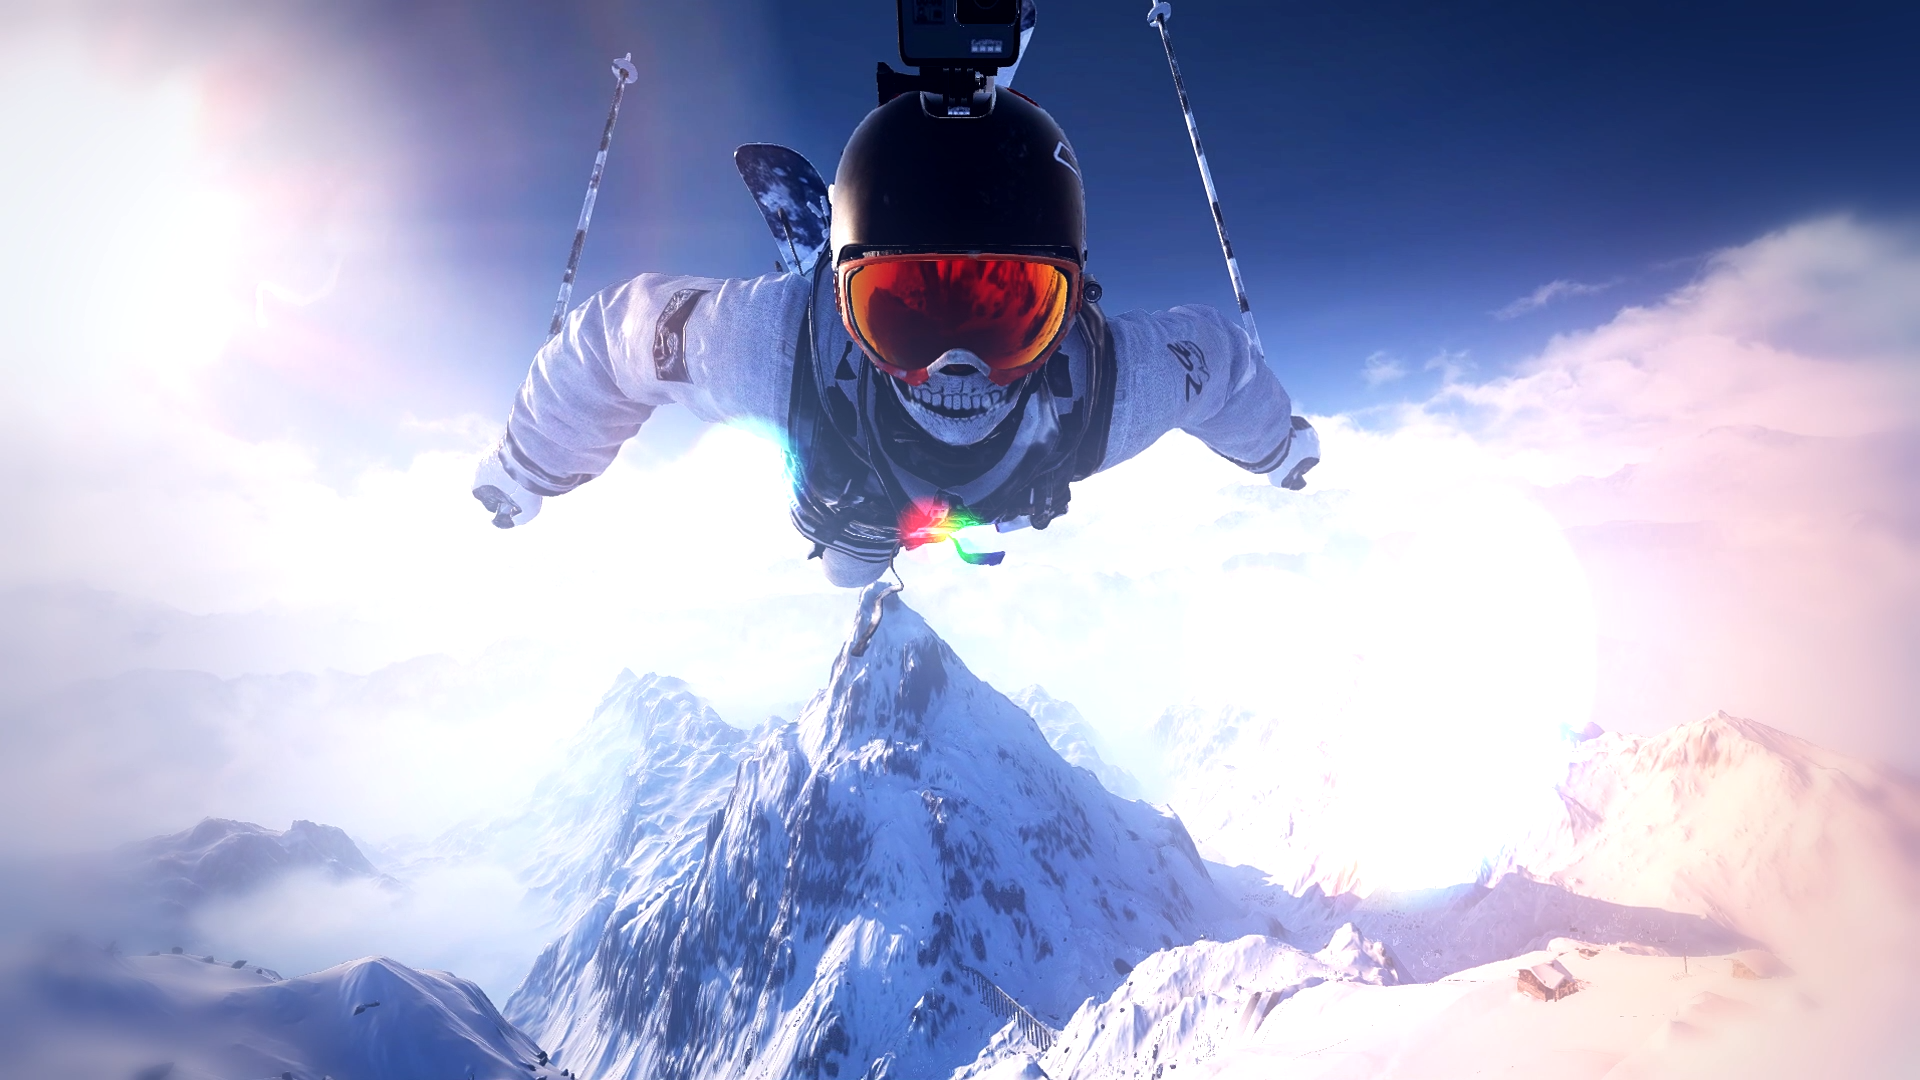 Nintendo Wallpaper Iphone X Steep Road To The Olympics Hd Wallpapers Read Games